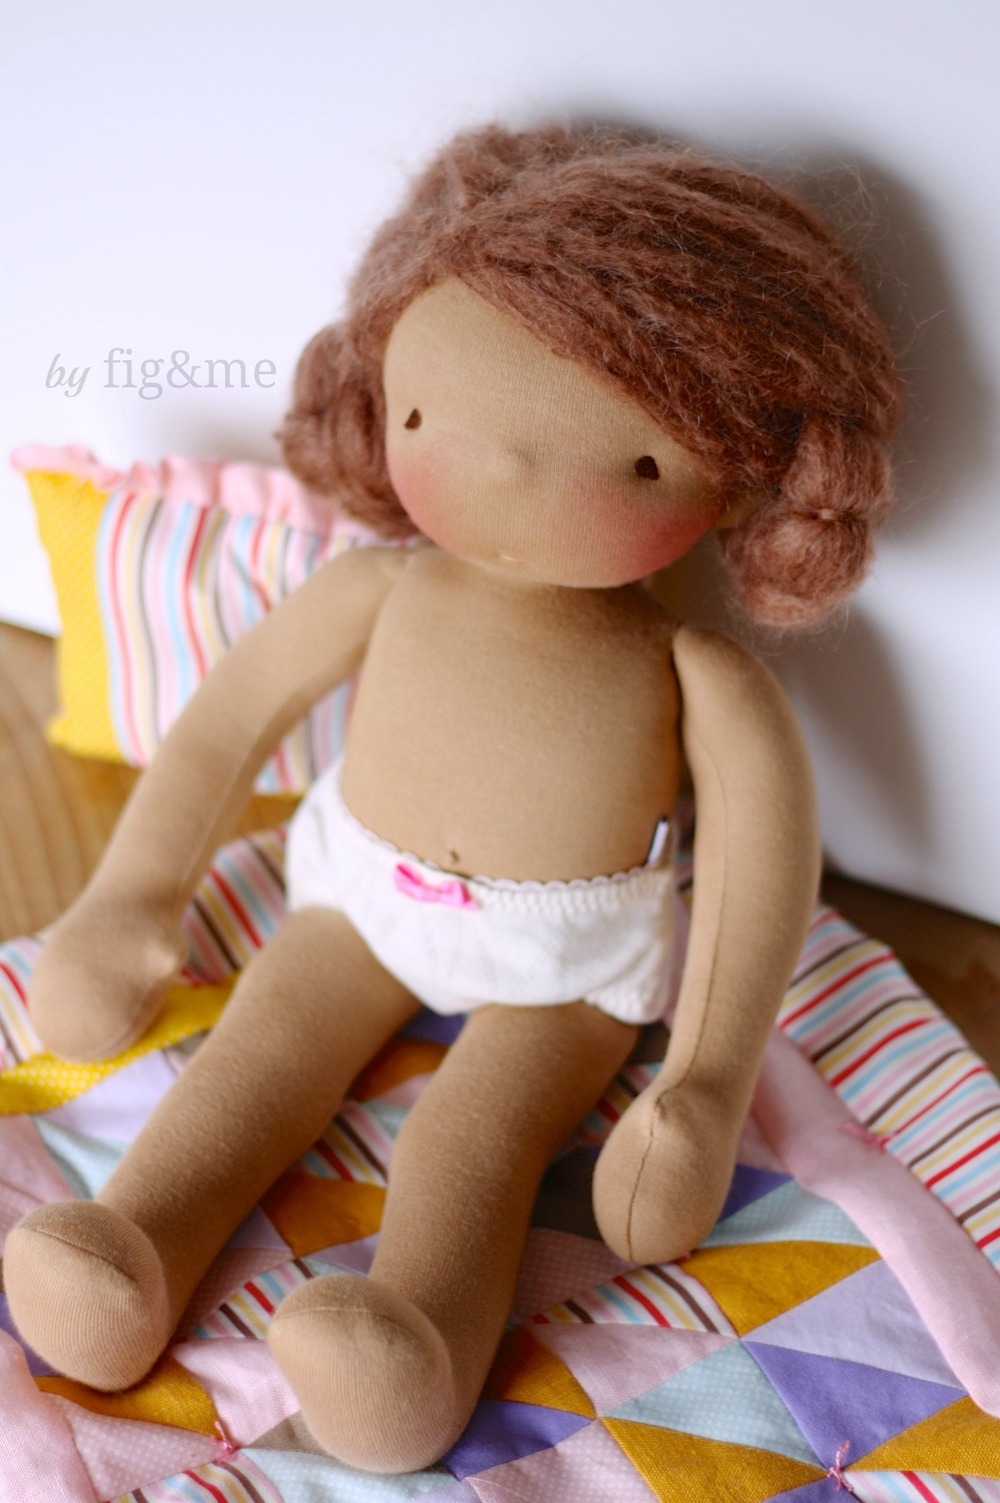 Carlotta in her sweet undies, by fig and me.